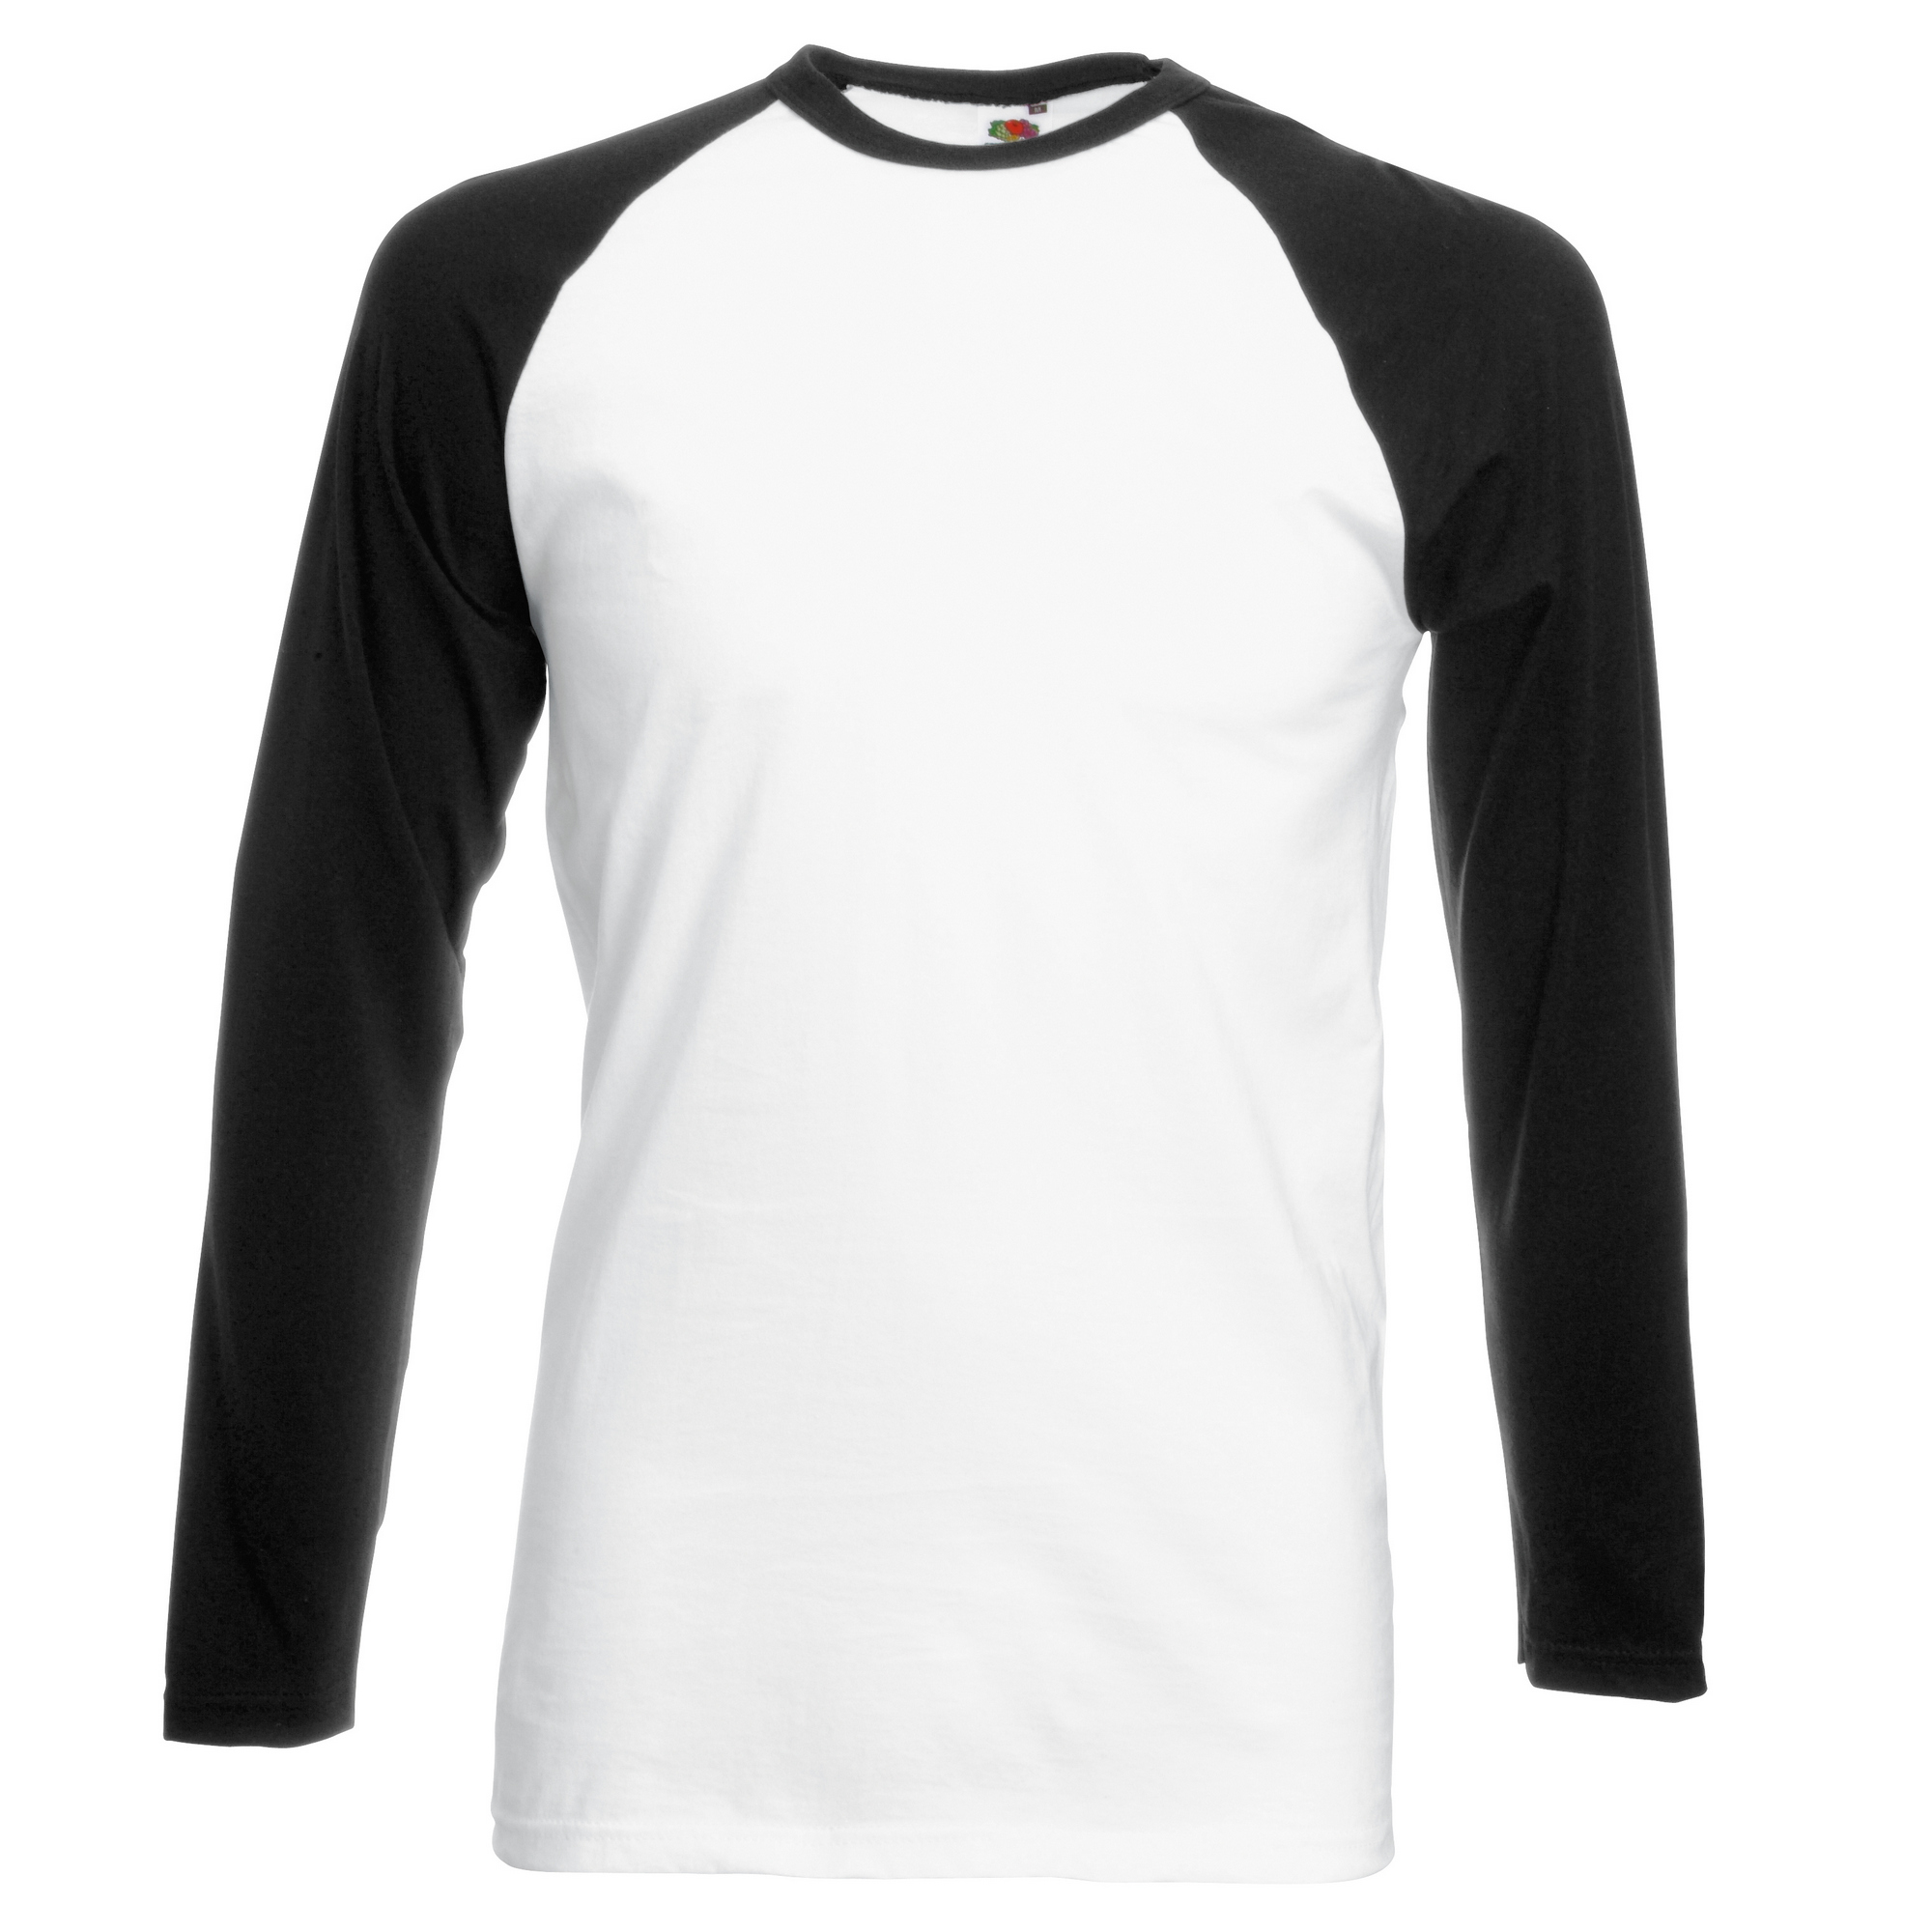 Fruit Of The Loom Mens Long Sleeve Baseball T Shirt Ebay